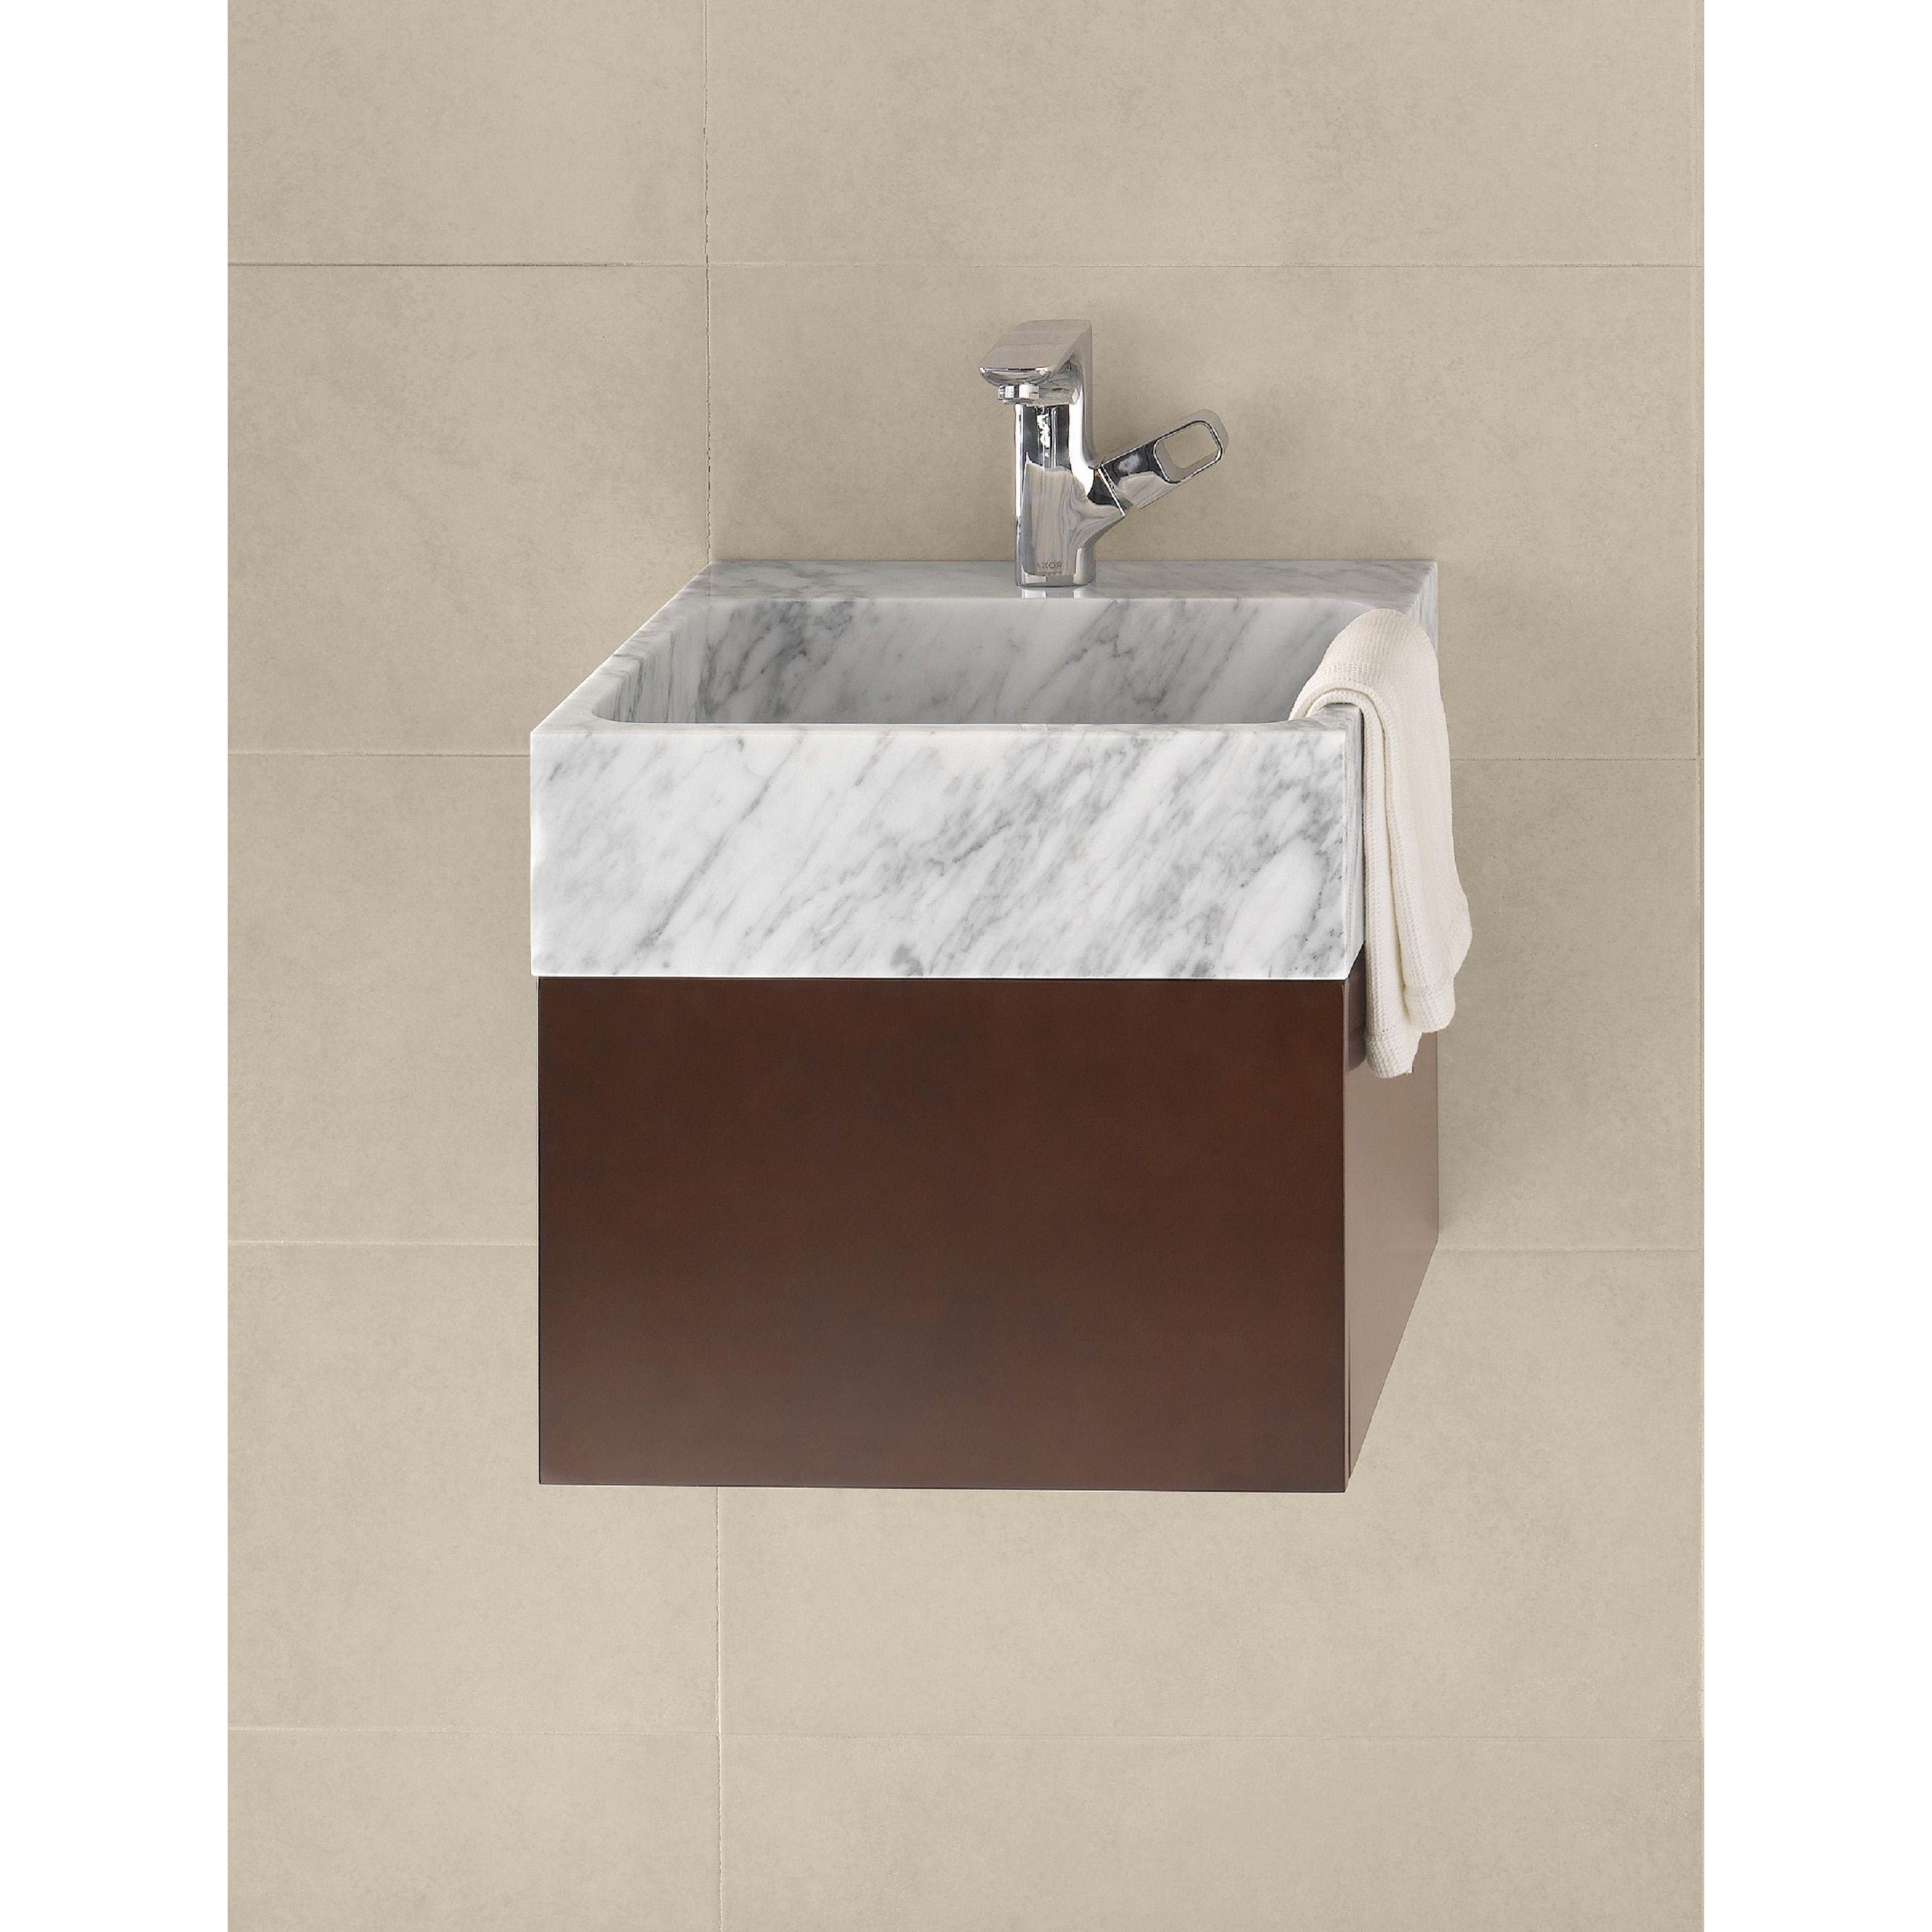 kallax of toilet beautiful faucet wall awesome vanity and bathroom mount